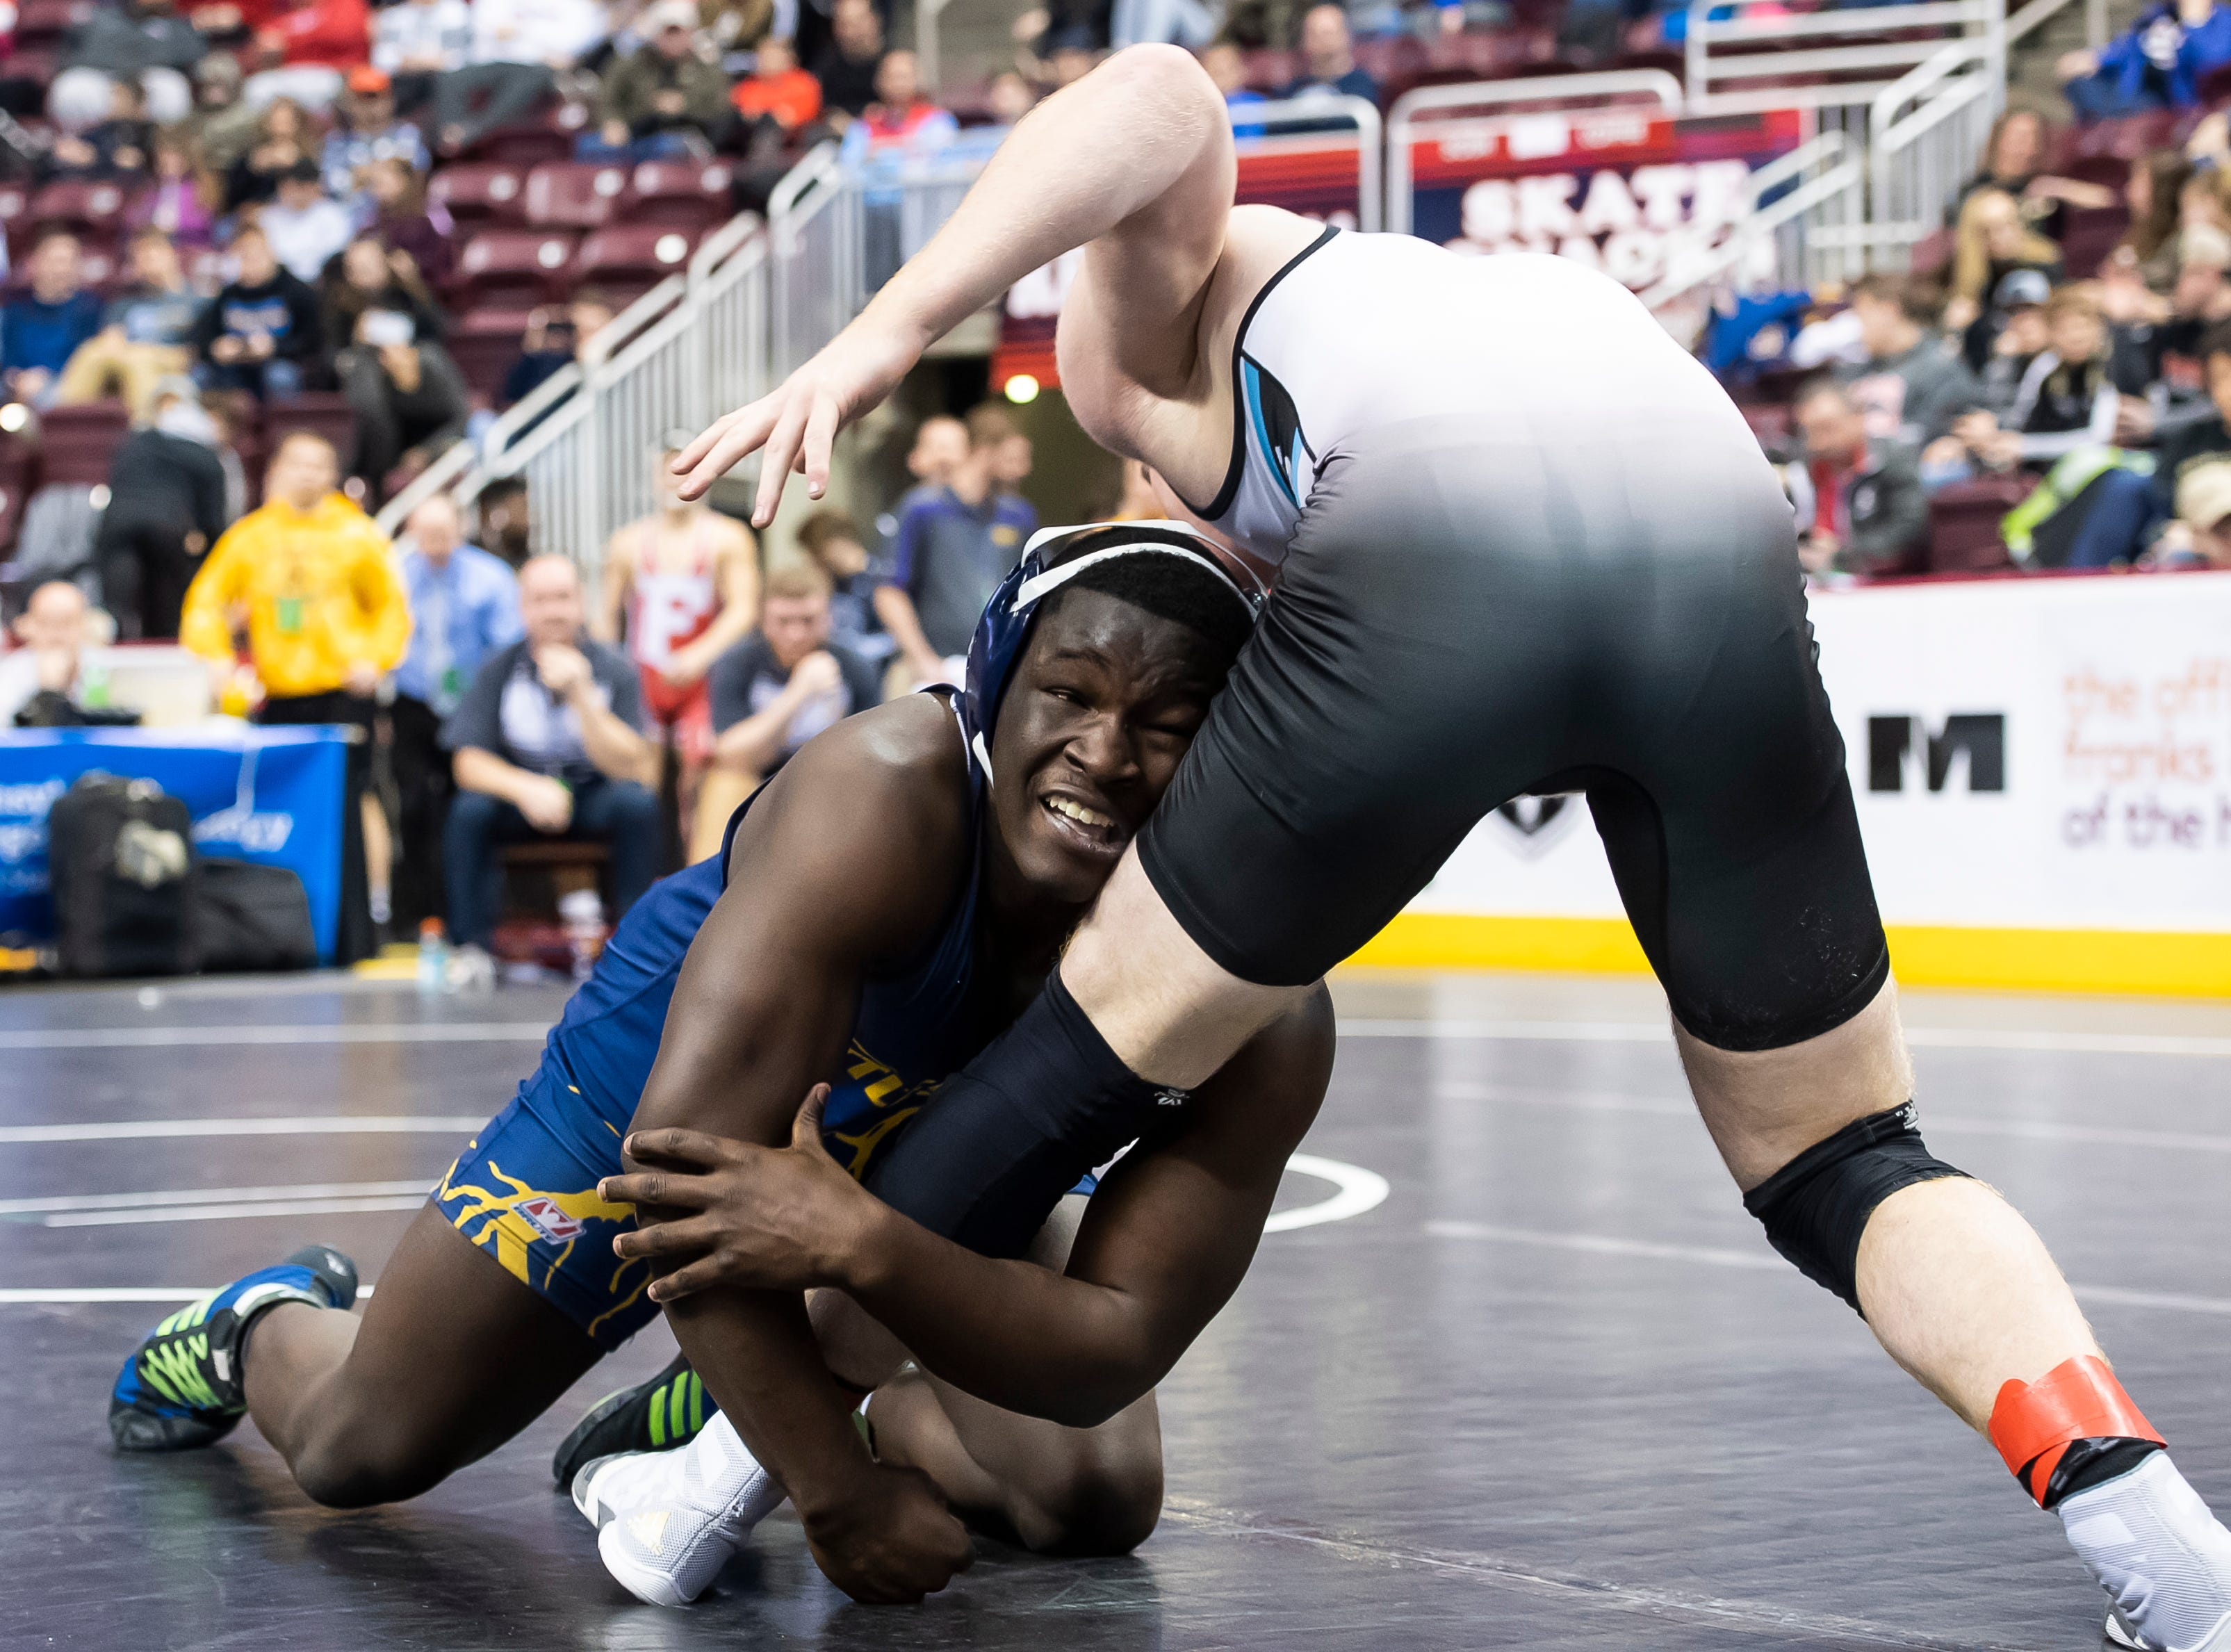 Littlestown's Carl Harris, bottom, wrestles Penn Cambria's Derek Brown during a 2A 170-pound quarterfinal bout at the Giant Center in Hershey Friday, March 8, 2019. Brown won by a 10-3 decision.